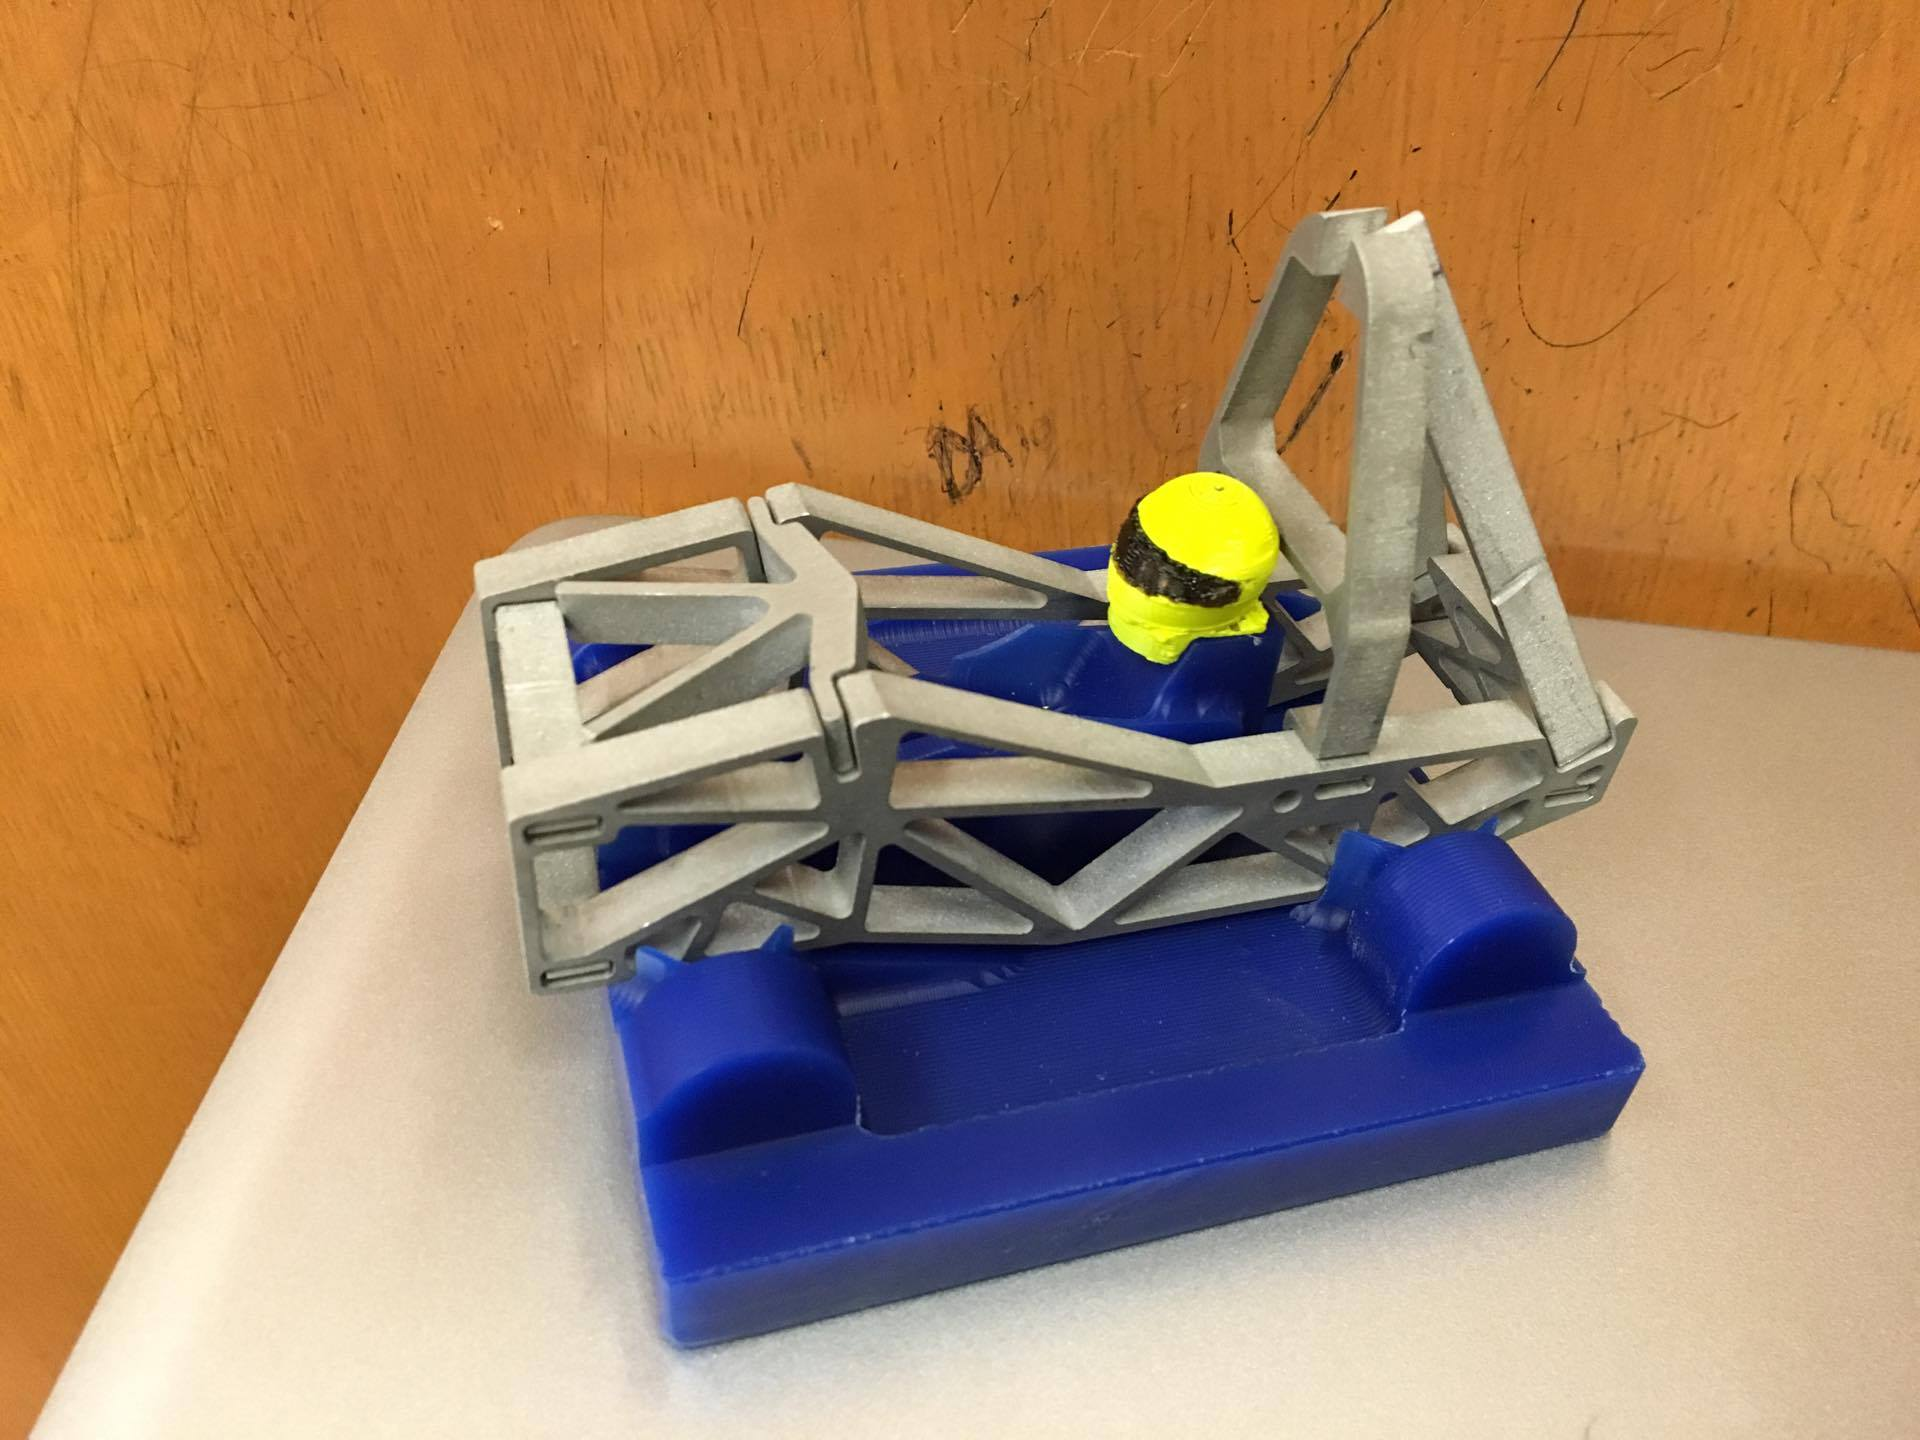 Full Assembly with 3D printed helmet, waterjet chassis, and CNC base